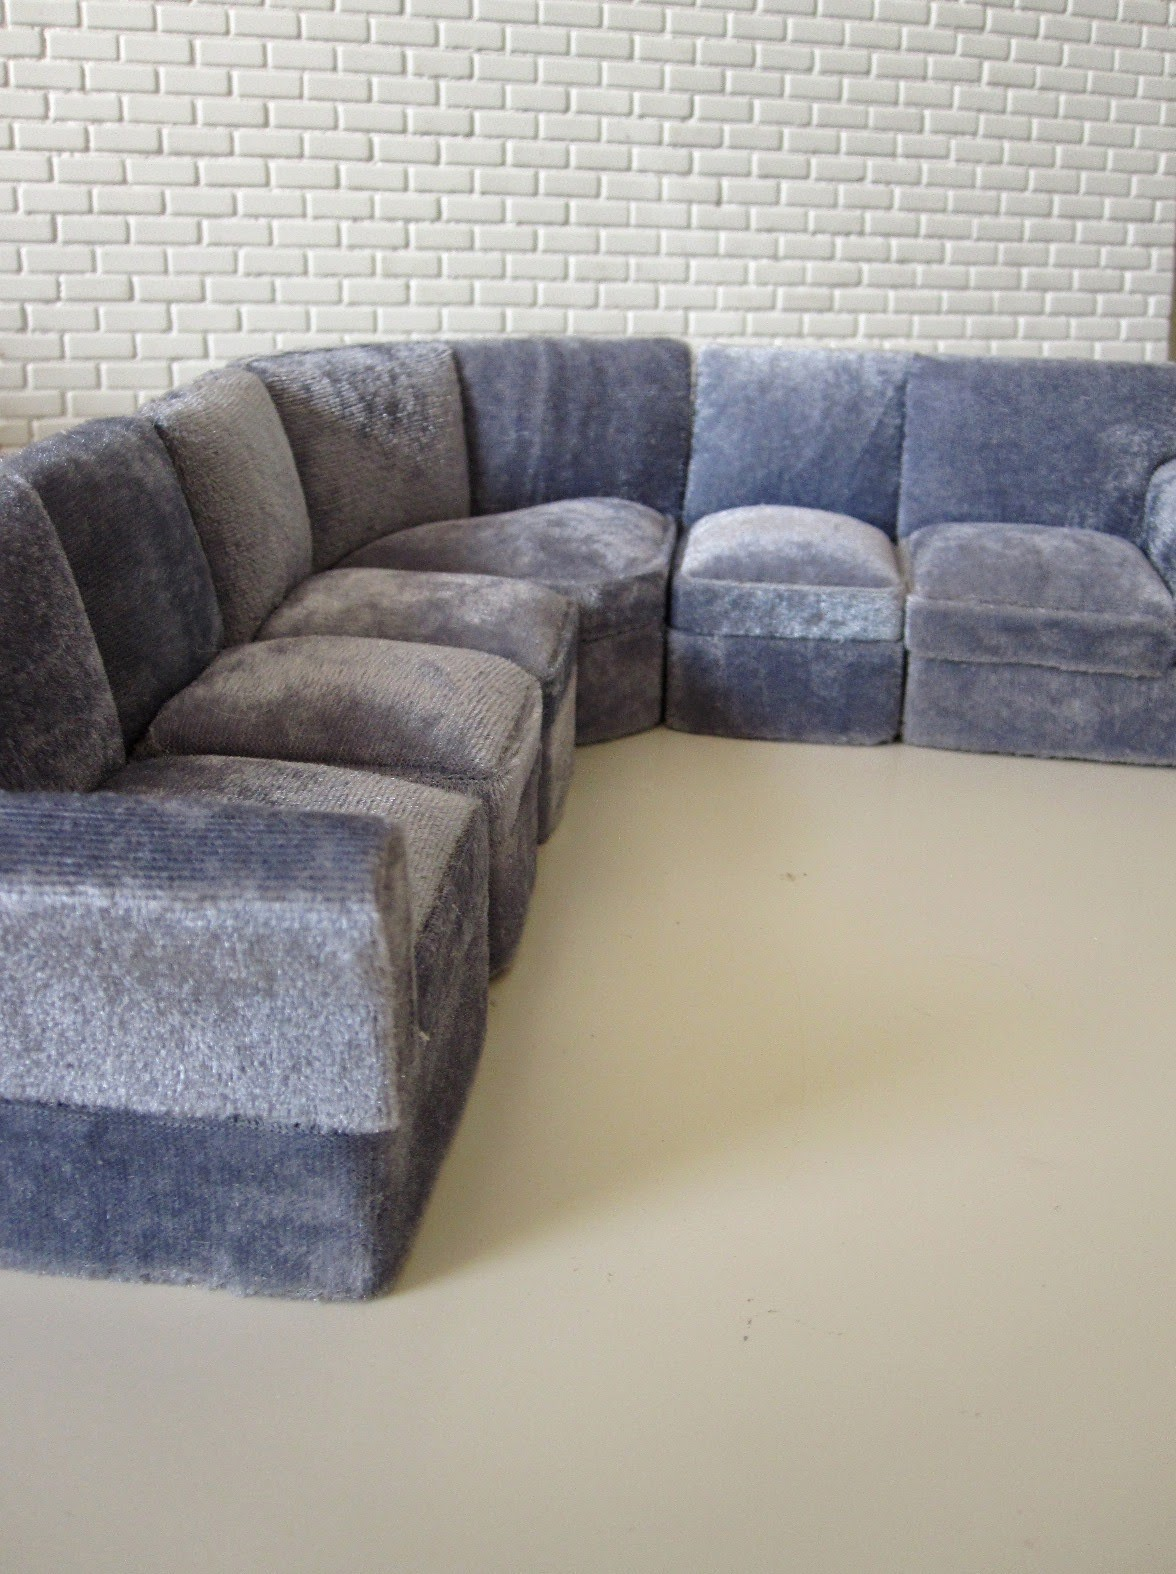 Modern miniature six seater grey velvet corner sofa.